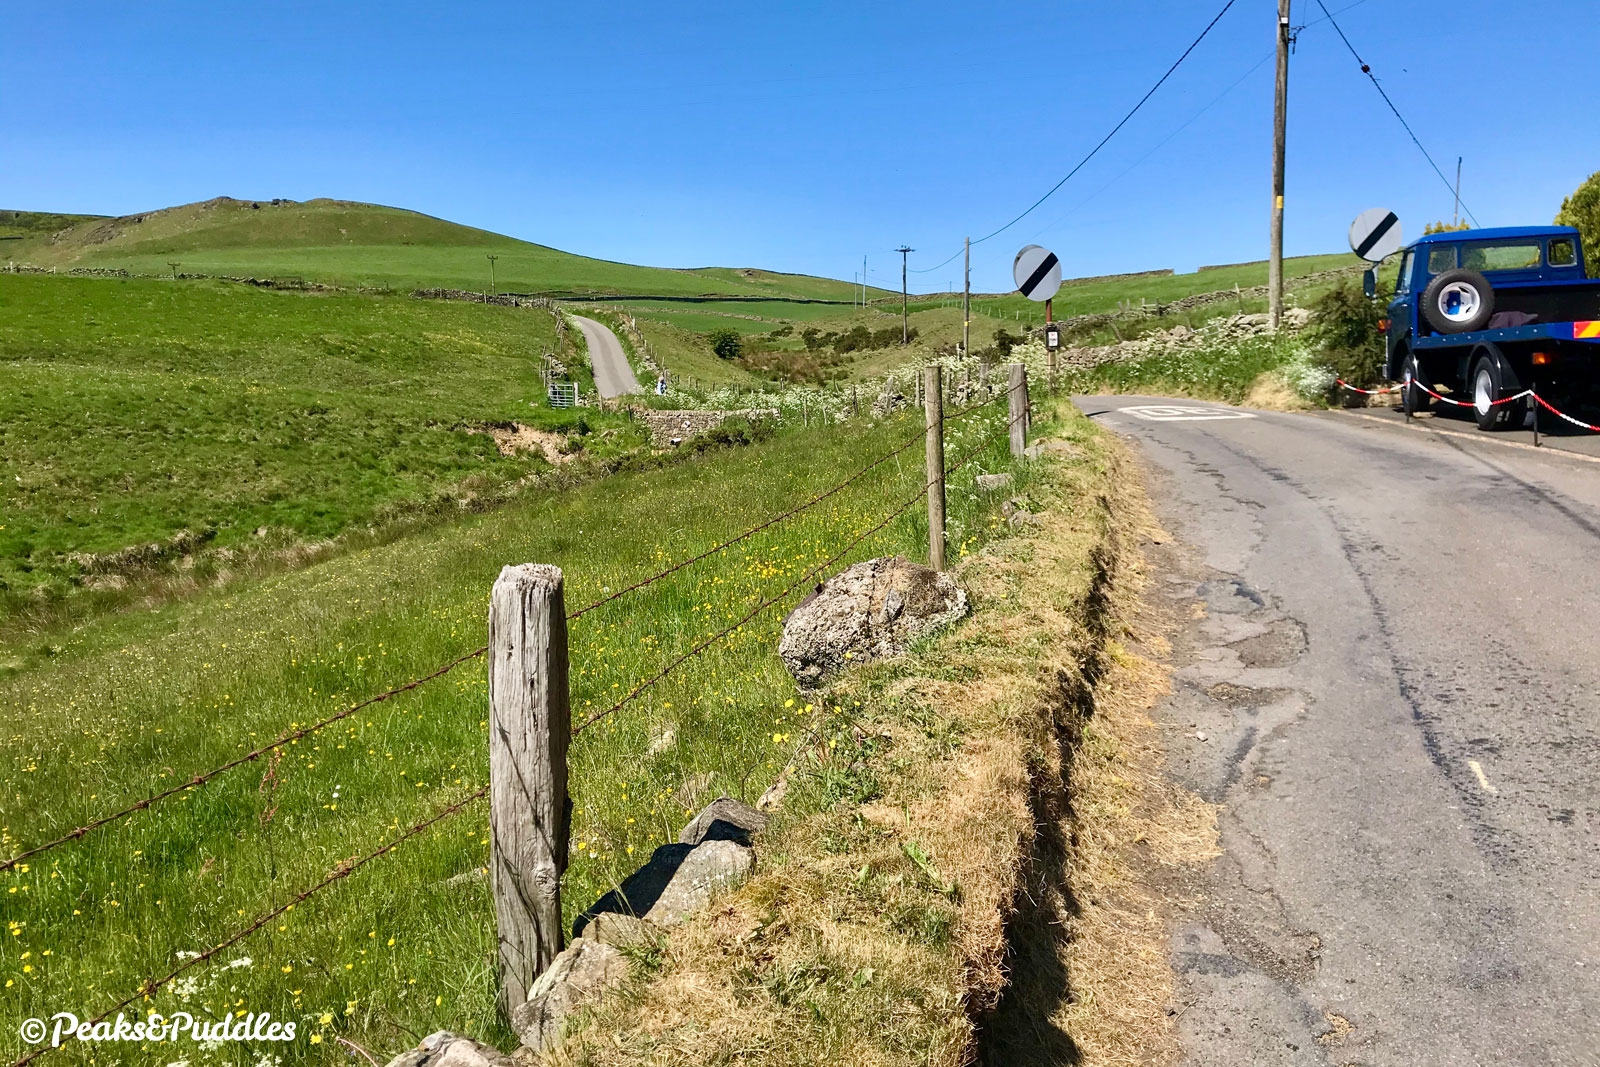 After turning left off Meadlow Lane onto Cowlow Lane and climbing past the row of houses, the undulating route ahead over the side of Combs Moss unfolds.